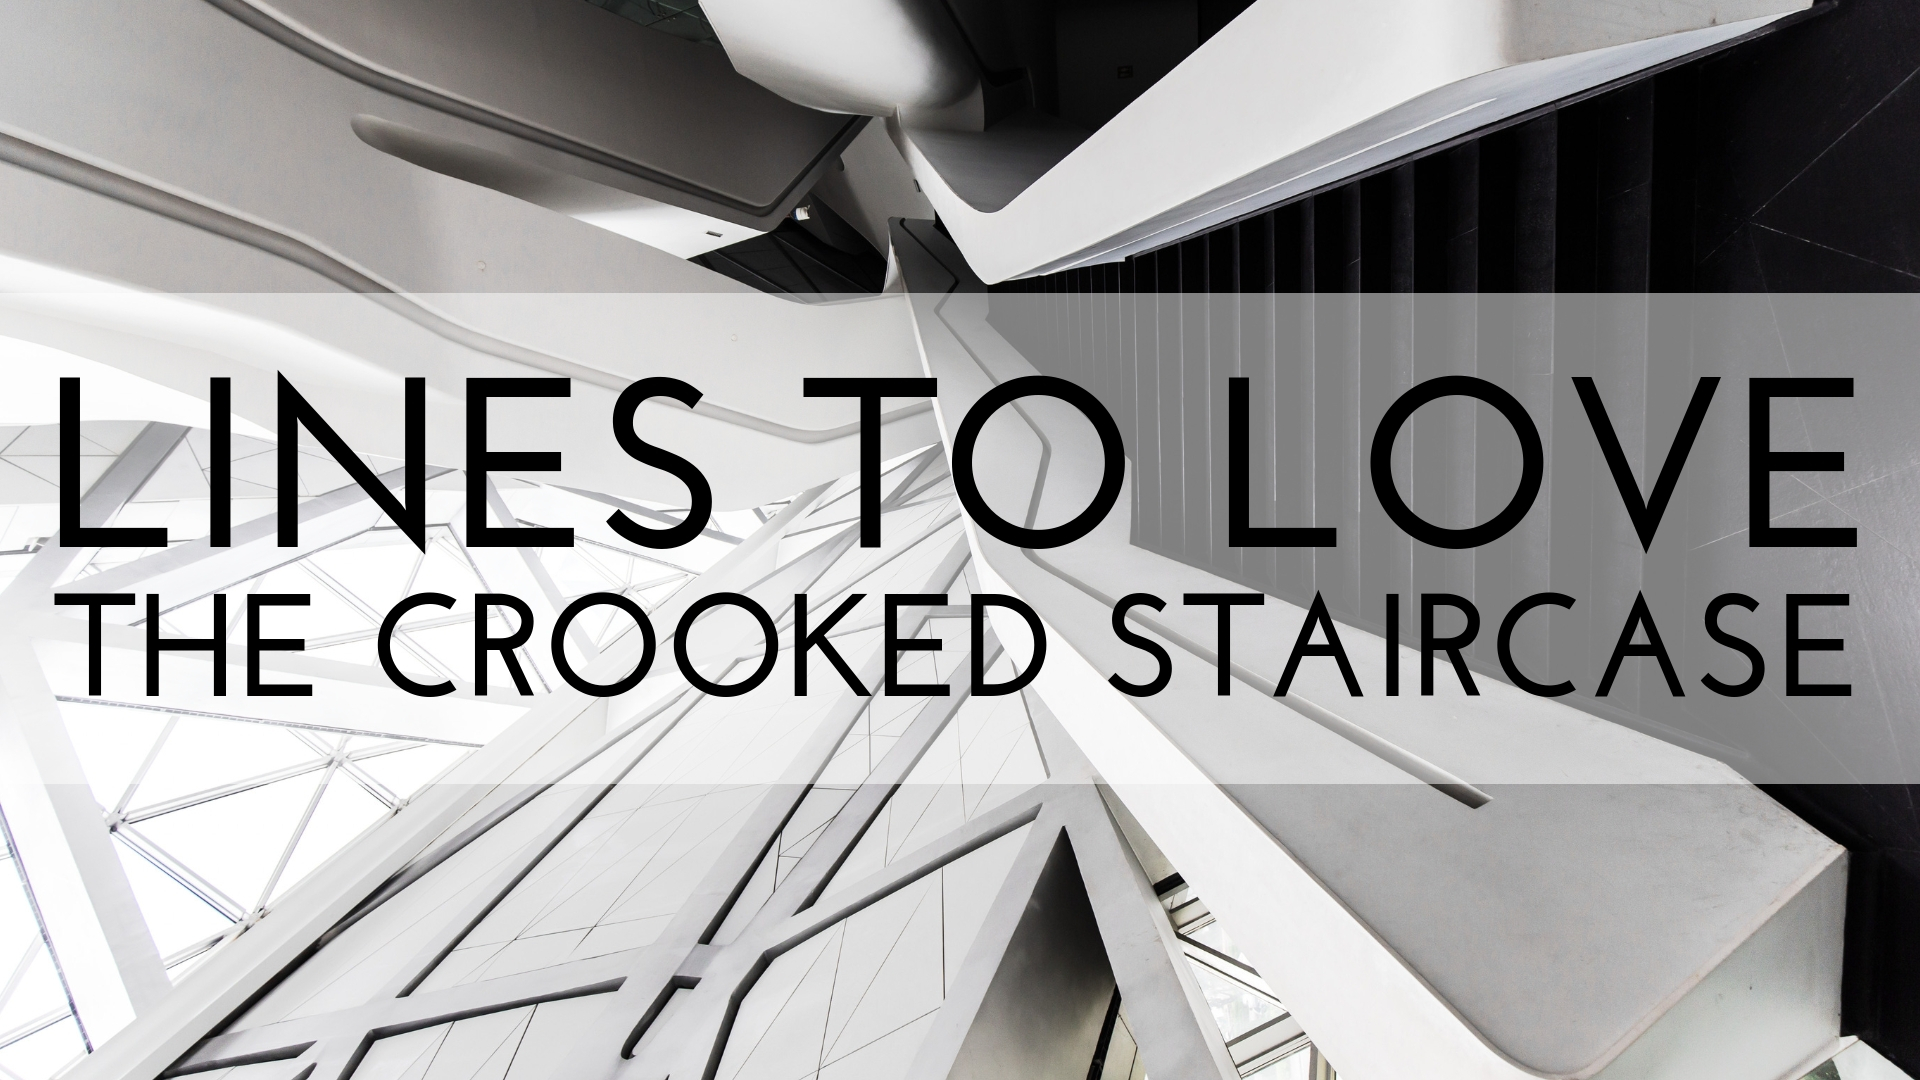 banner-lines-to-love-the-crooked-staircase-01.jpg